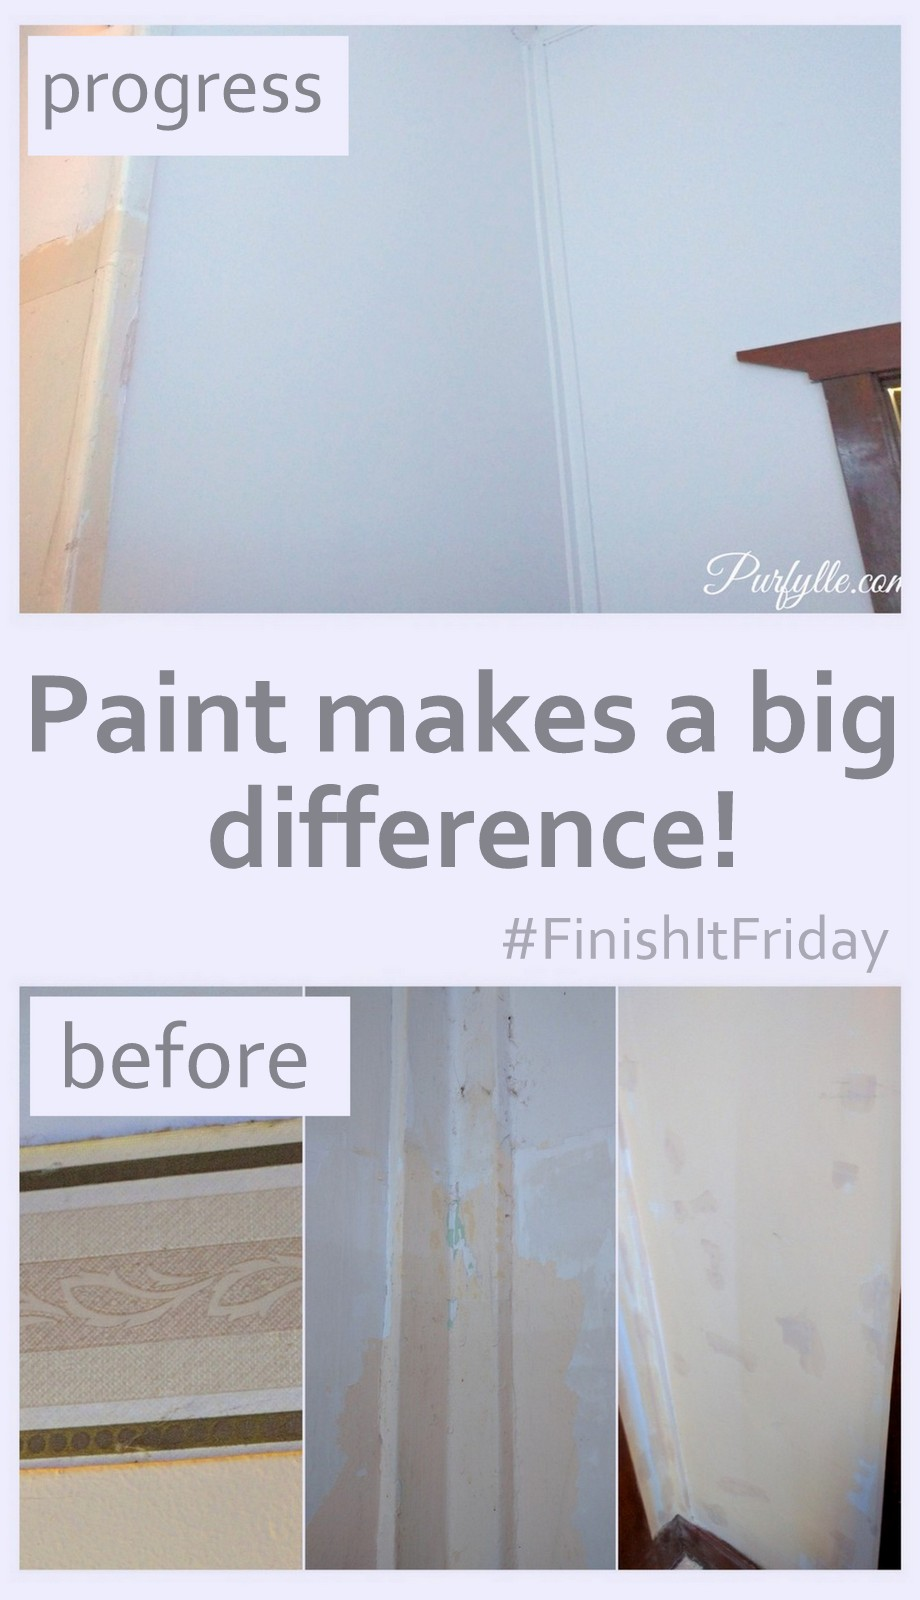 Paint makes a big difference to how a space looks and feels as well as how bright it is.